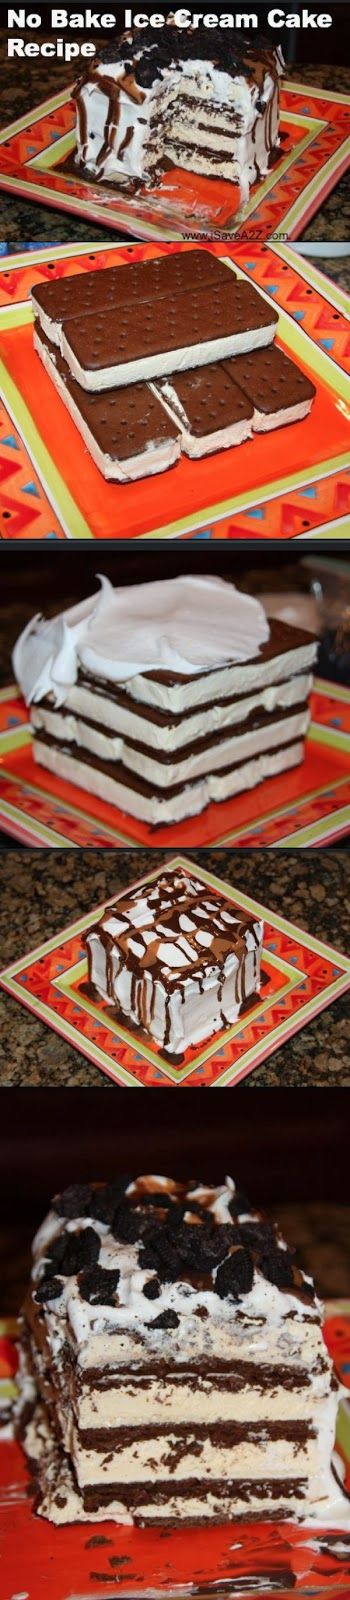 How To Ice Cream Sandwich Cake Recipe!